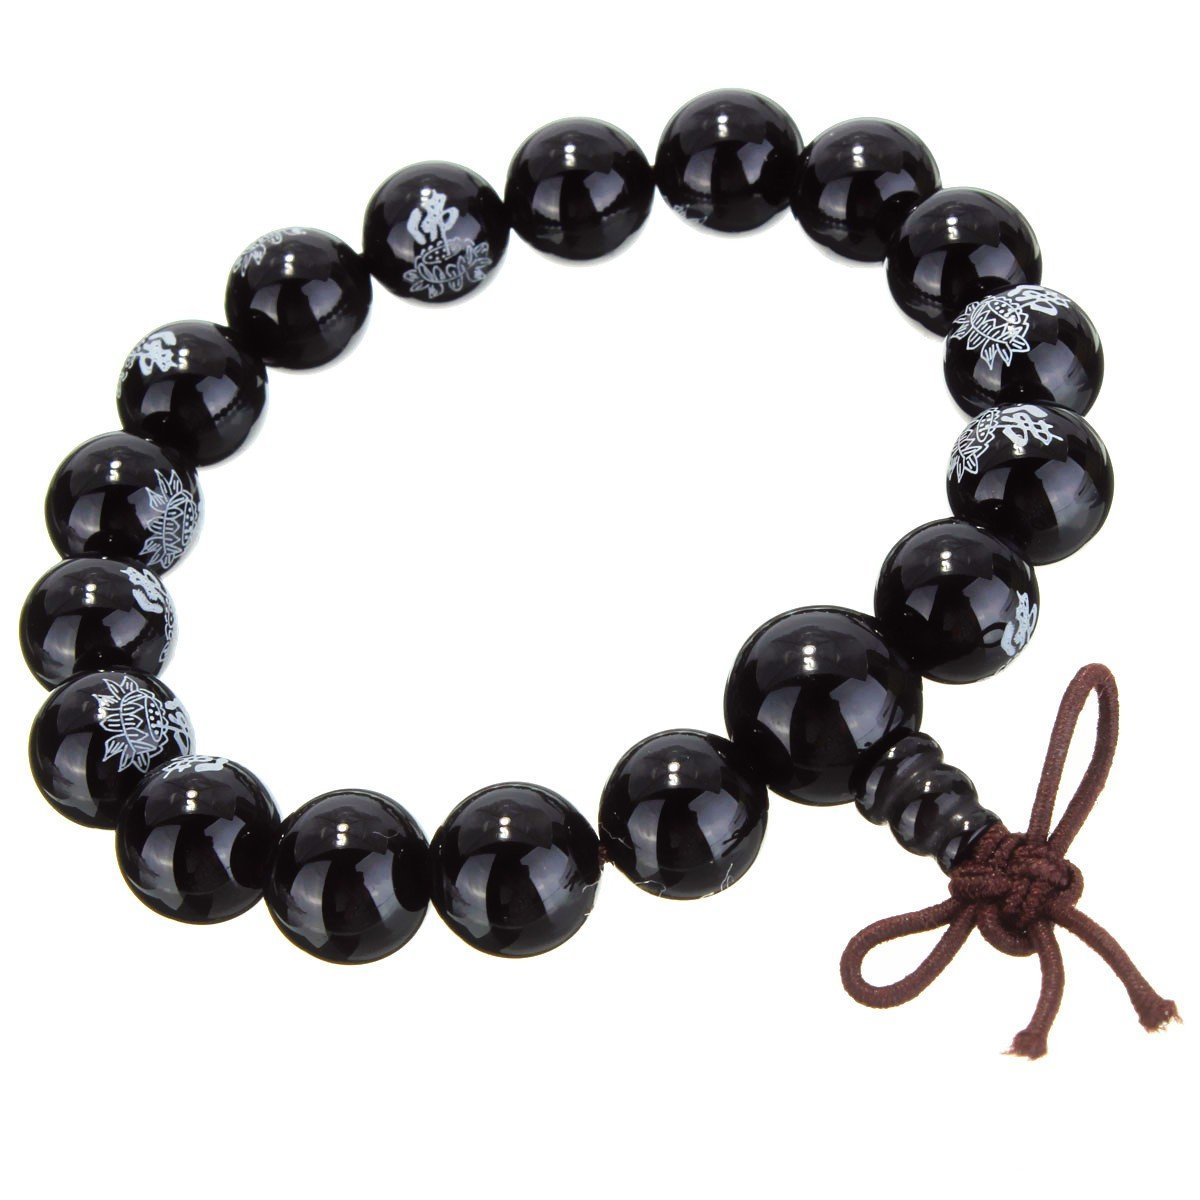 Black Agate Mala with Lotus Flower Engraving